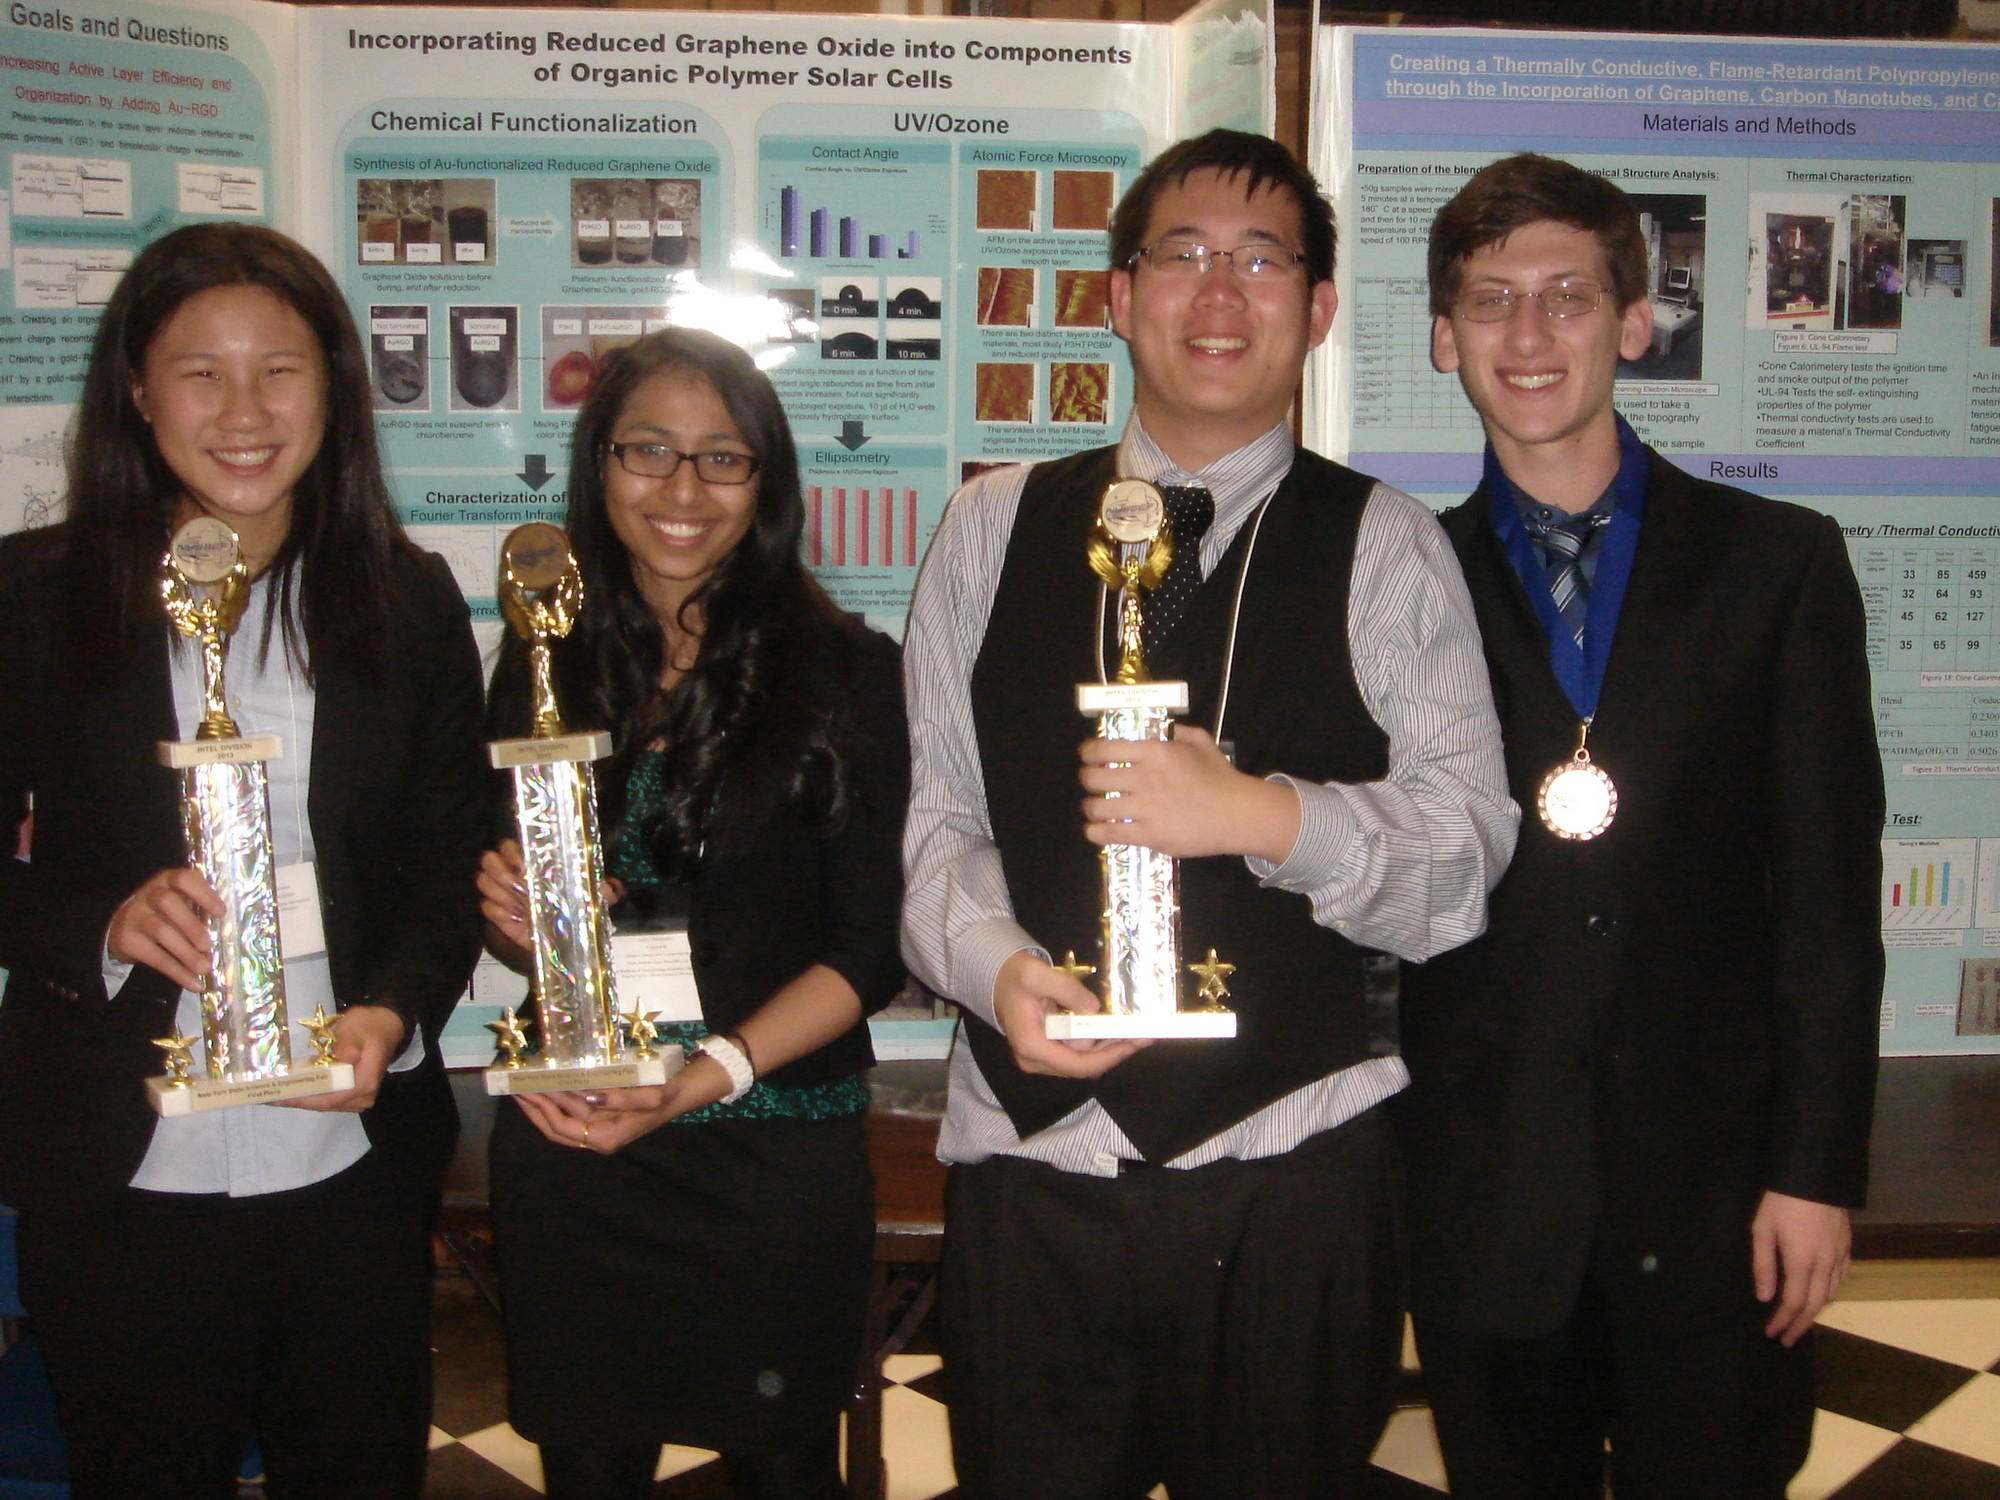 Lawrence High School students overcame the adversity of being relocated to the middle school to be named finalists in two science competitions. From left, Alexandra Tse, Sneha Chittathinini, Andrew Chen and Steven Krim won awards.